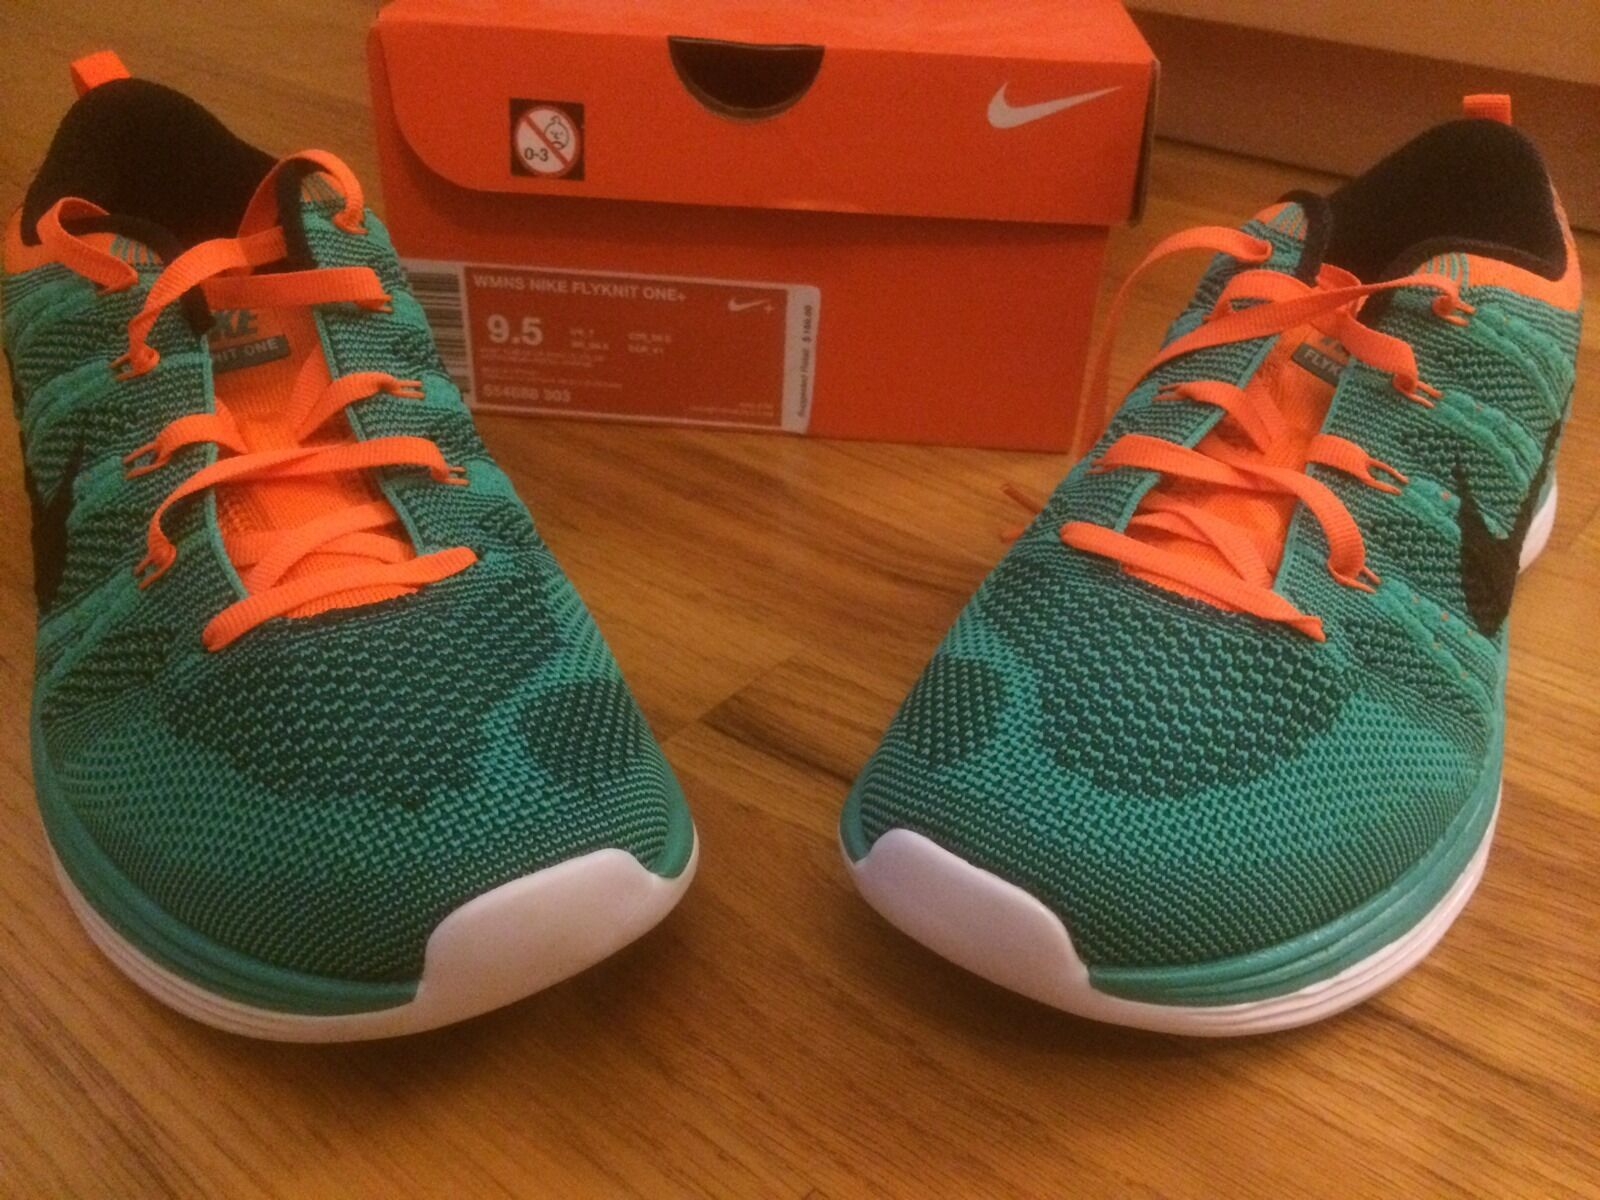 new Nike Wmns Flyknit Lunar One+ Green orange Womens Running Shoes size 9.5